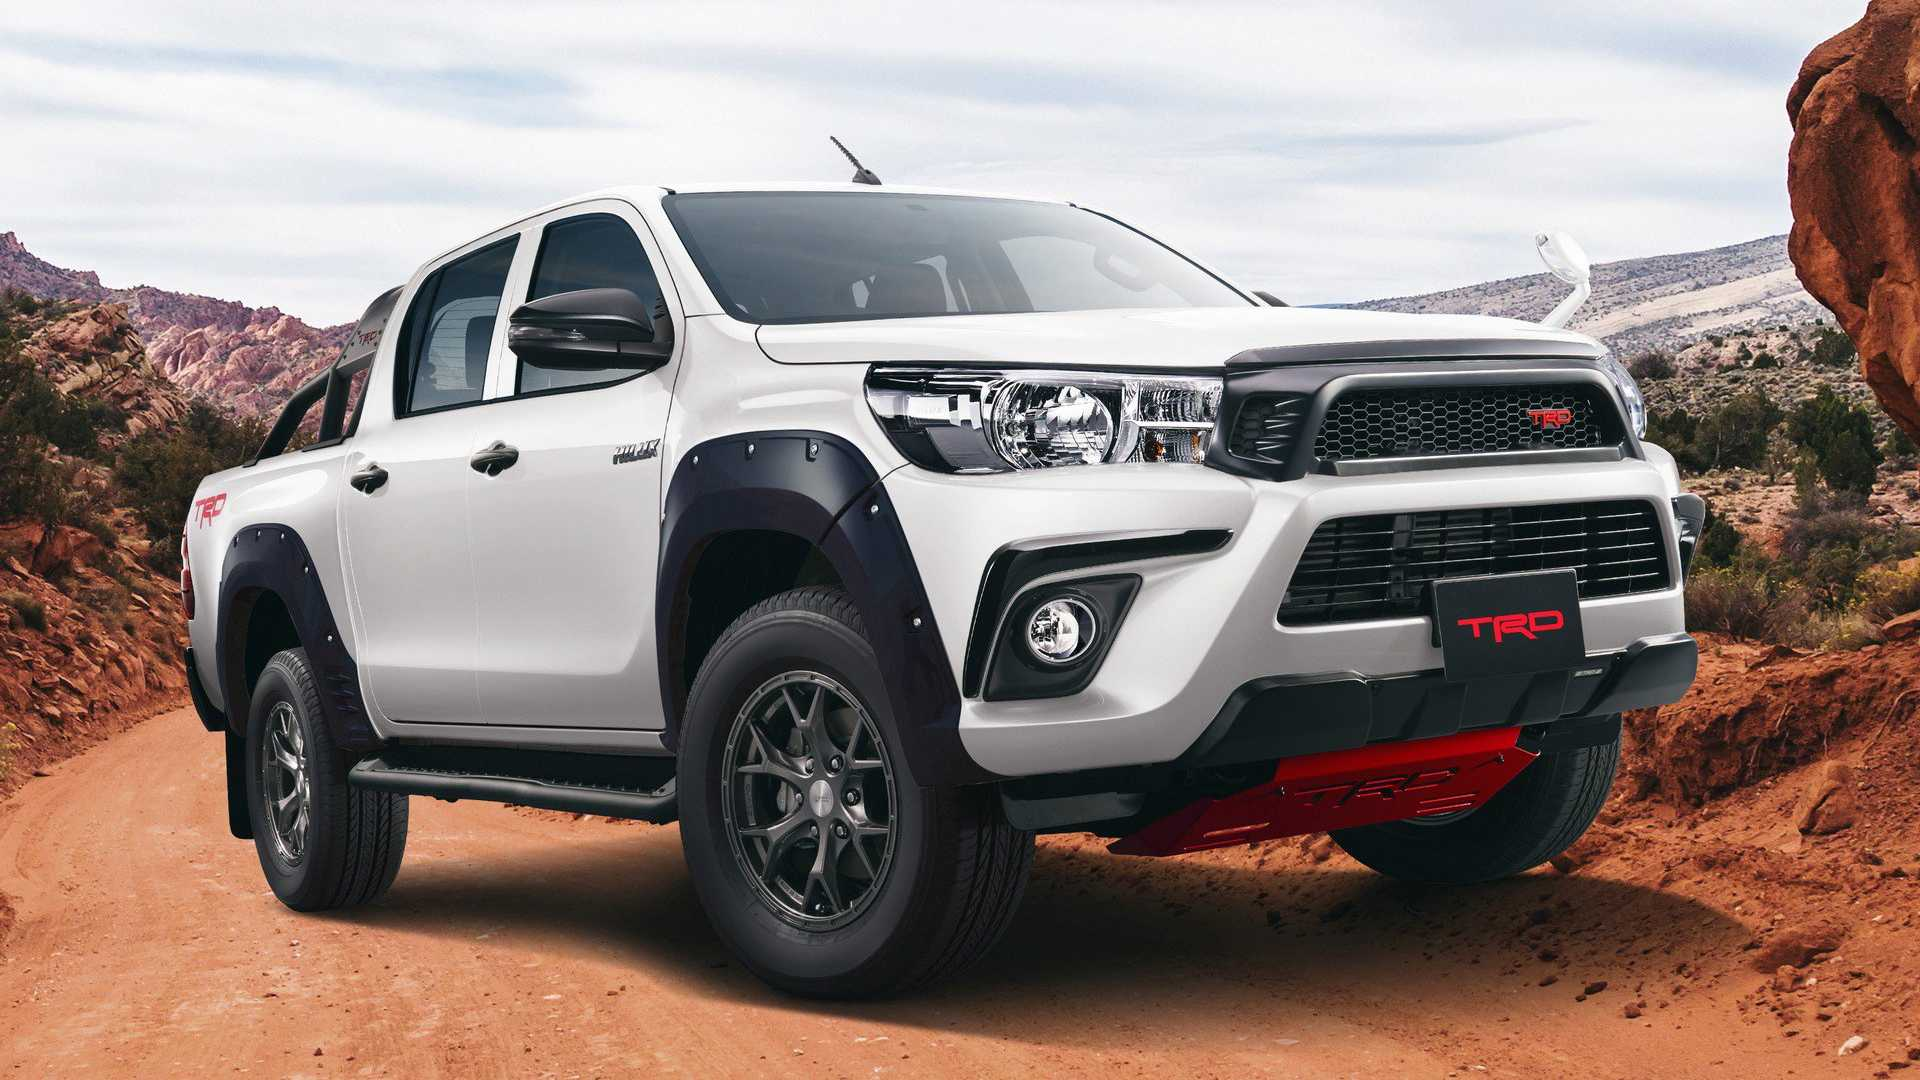 Toyota Hilux 2020 silver